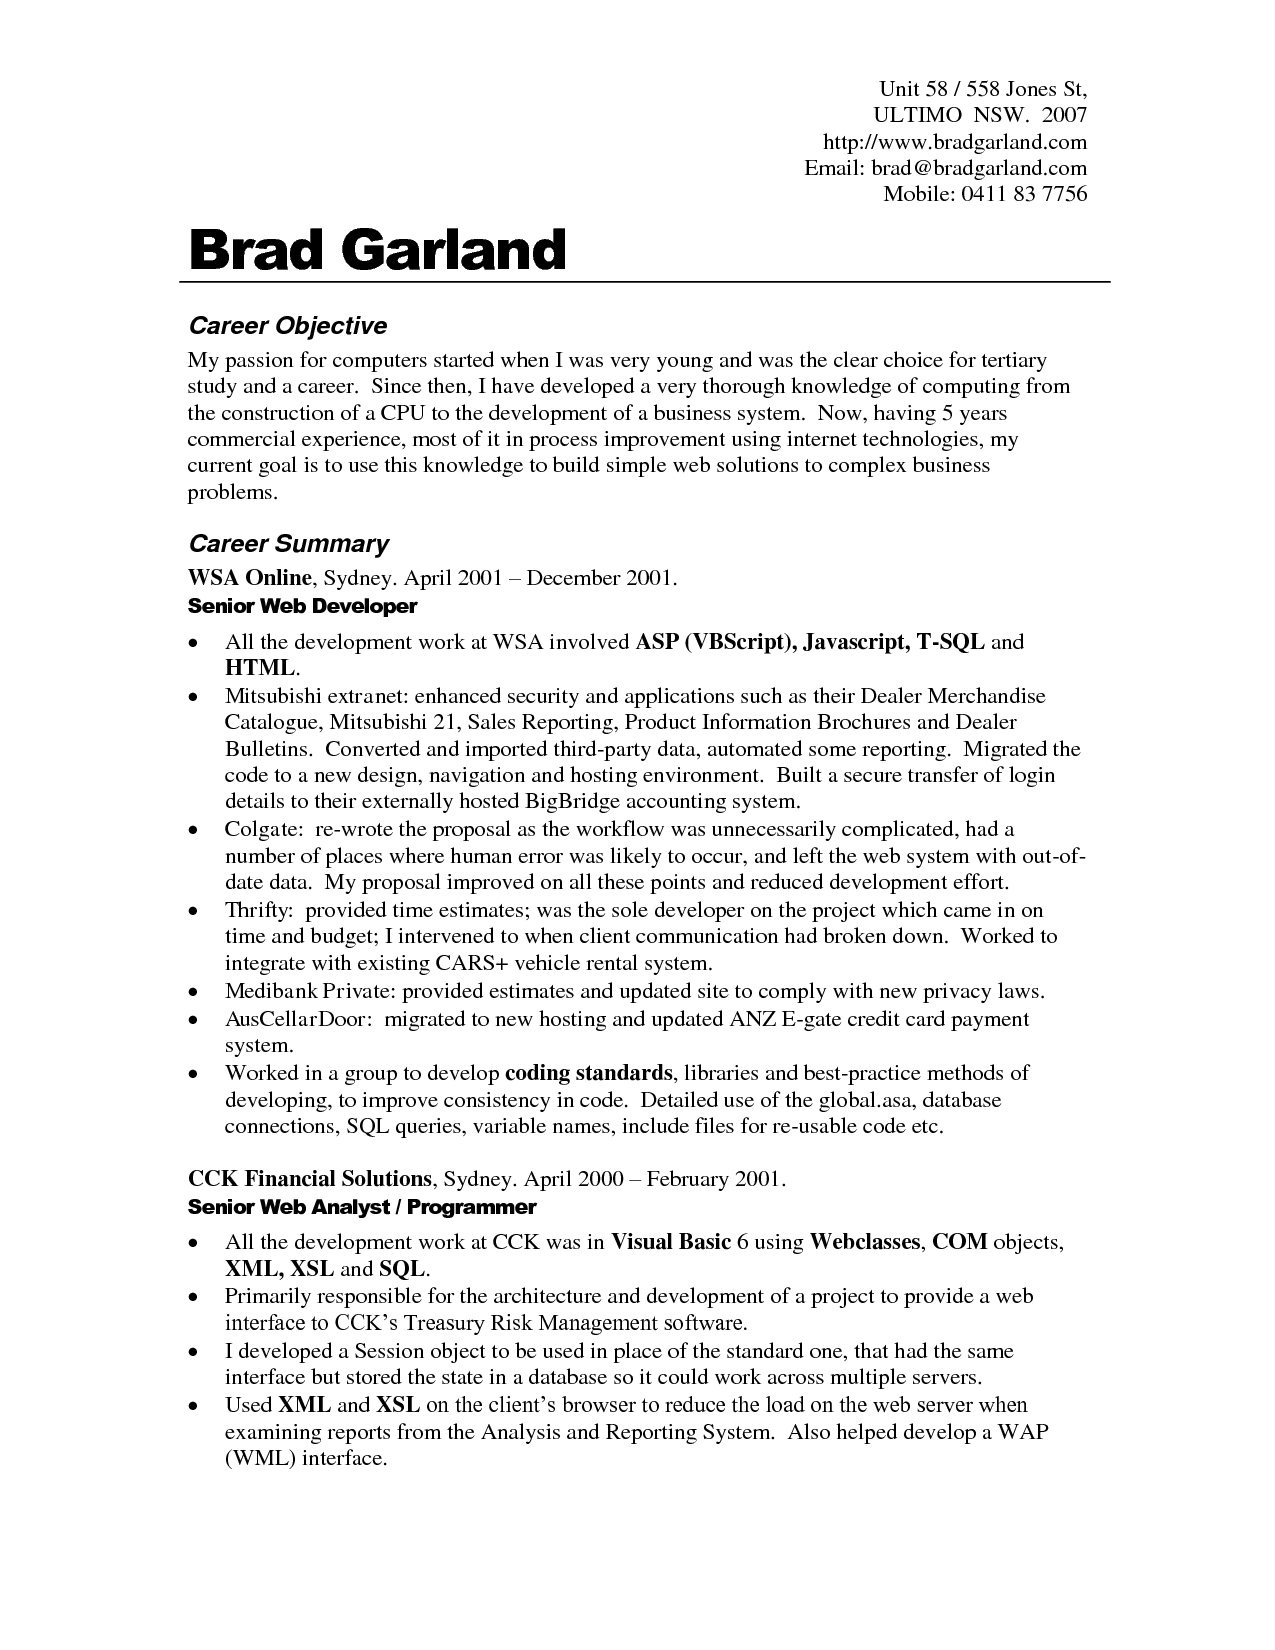 Free Resume Templates Online Resume Objectives Examples Best Templateresume Objective Examples